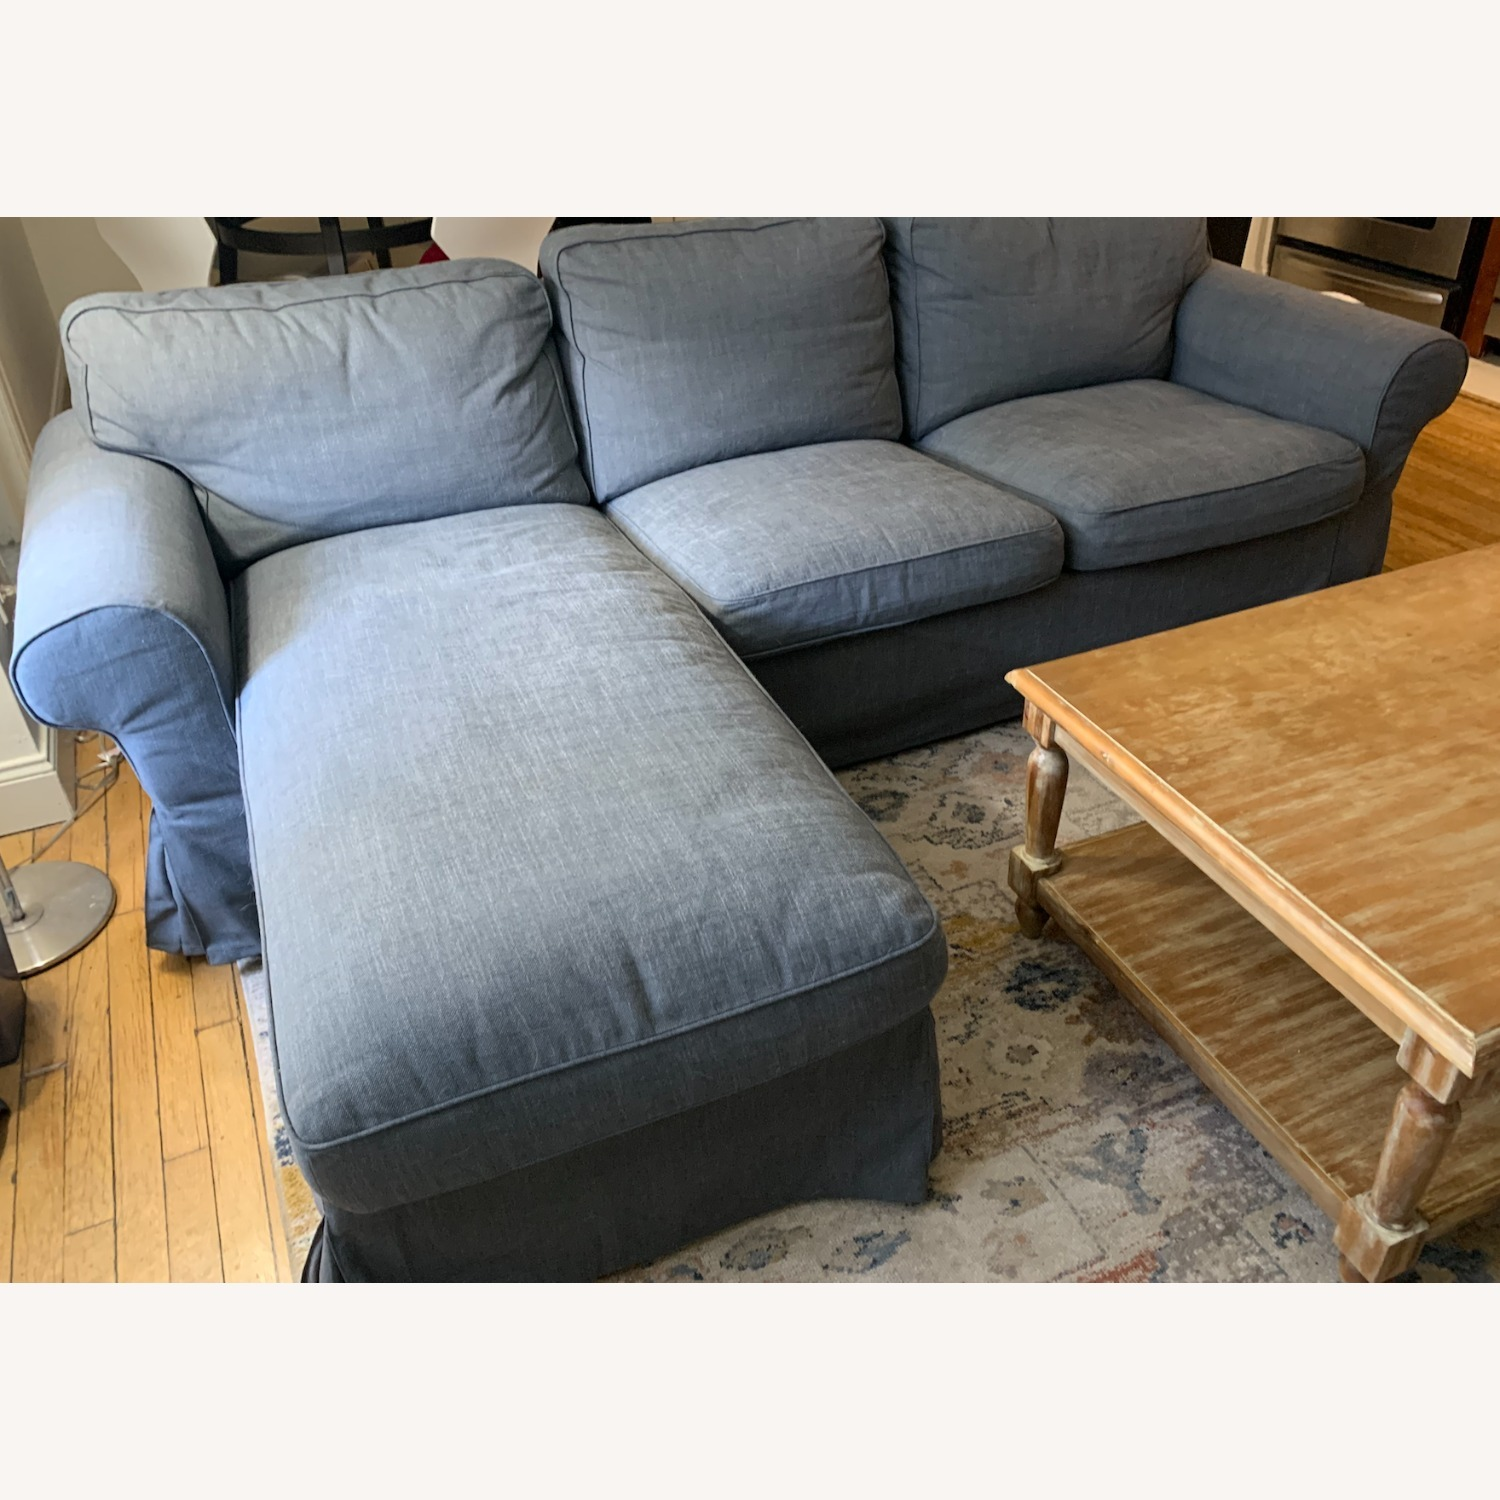 IKEA Grey 3-Seat Sofa with Chaise - image-2